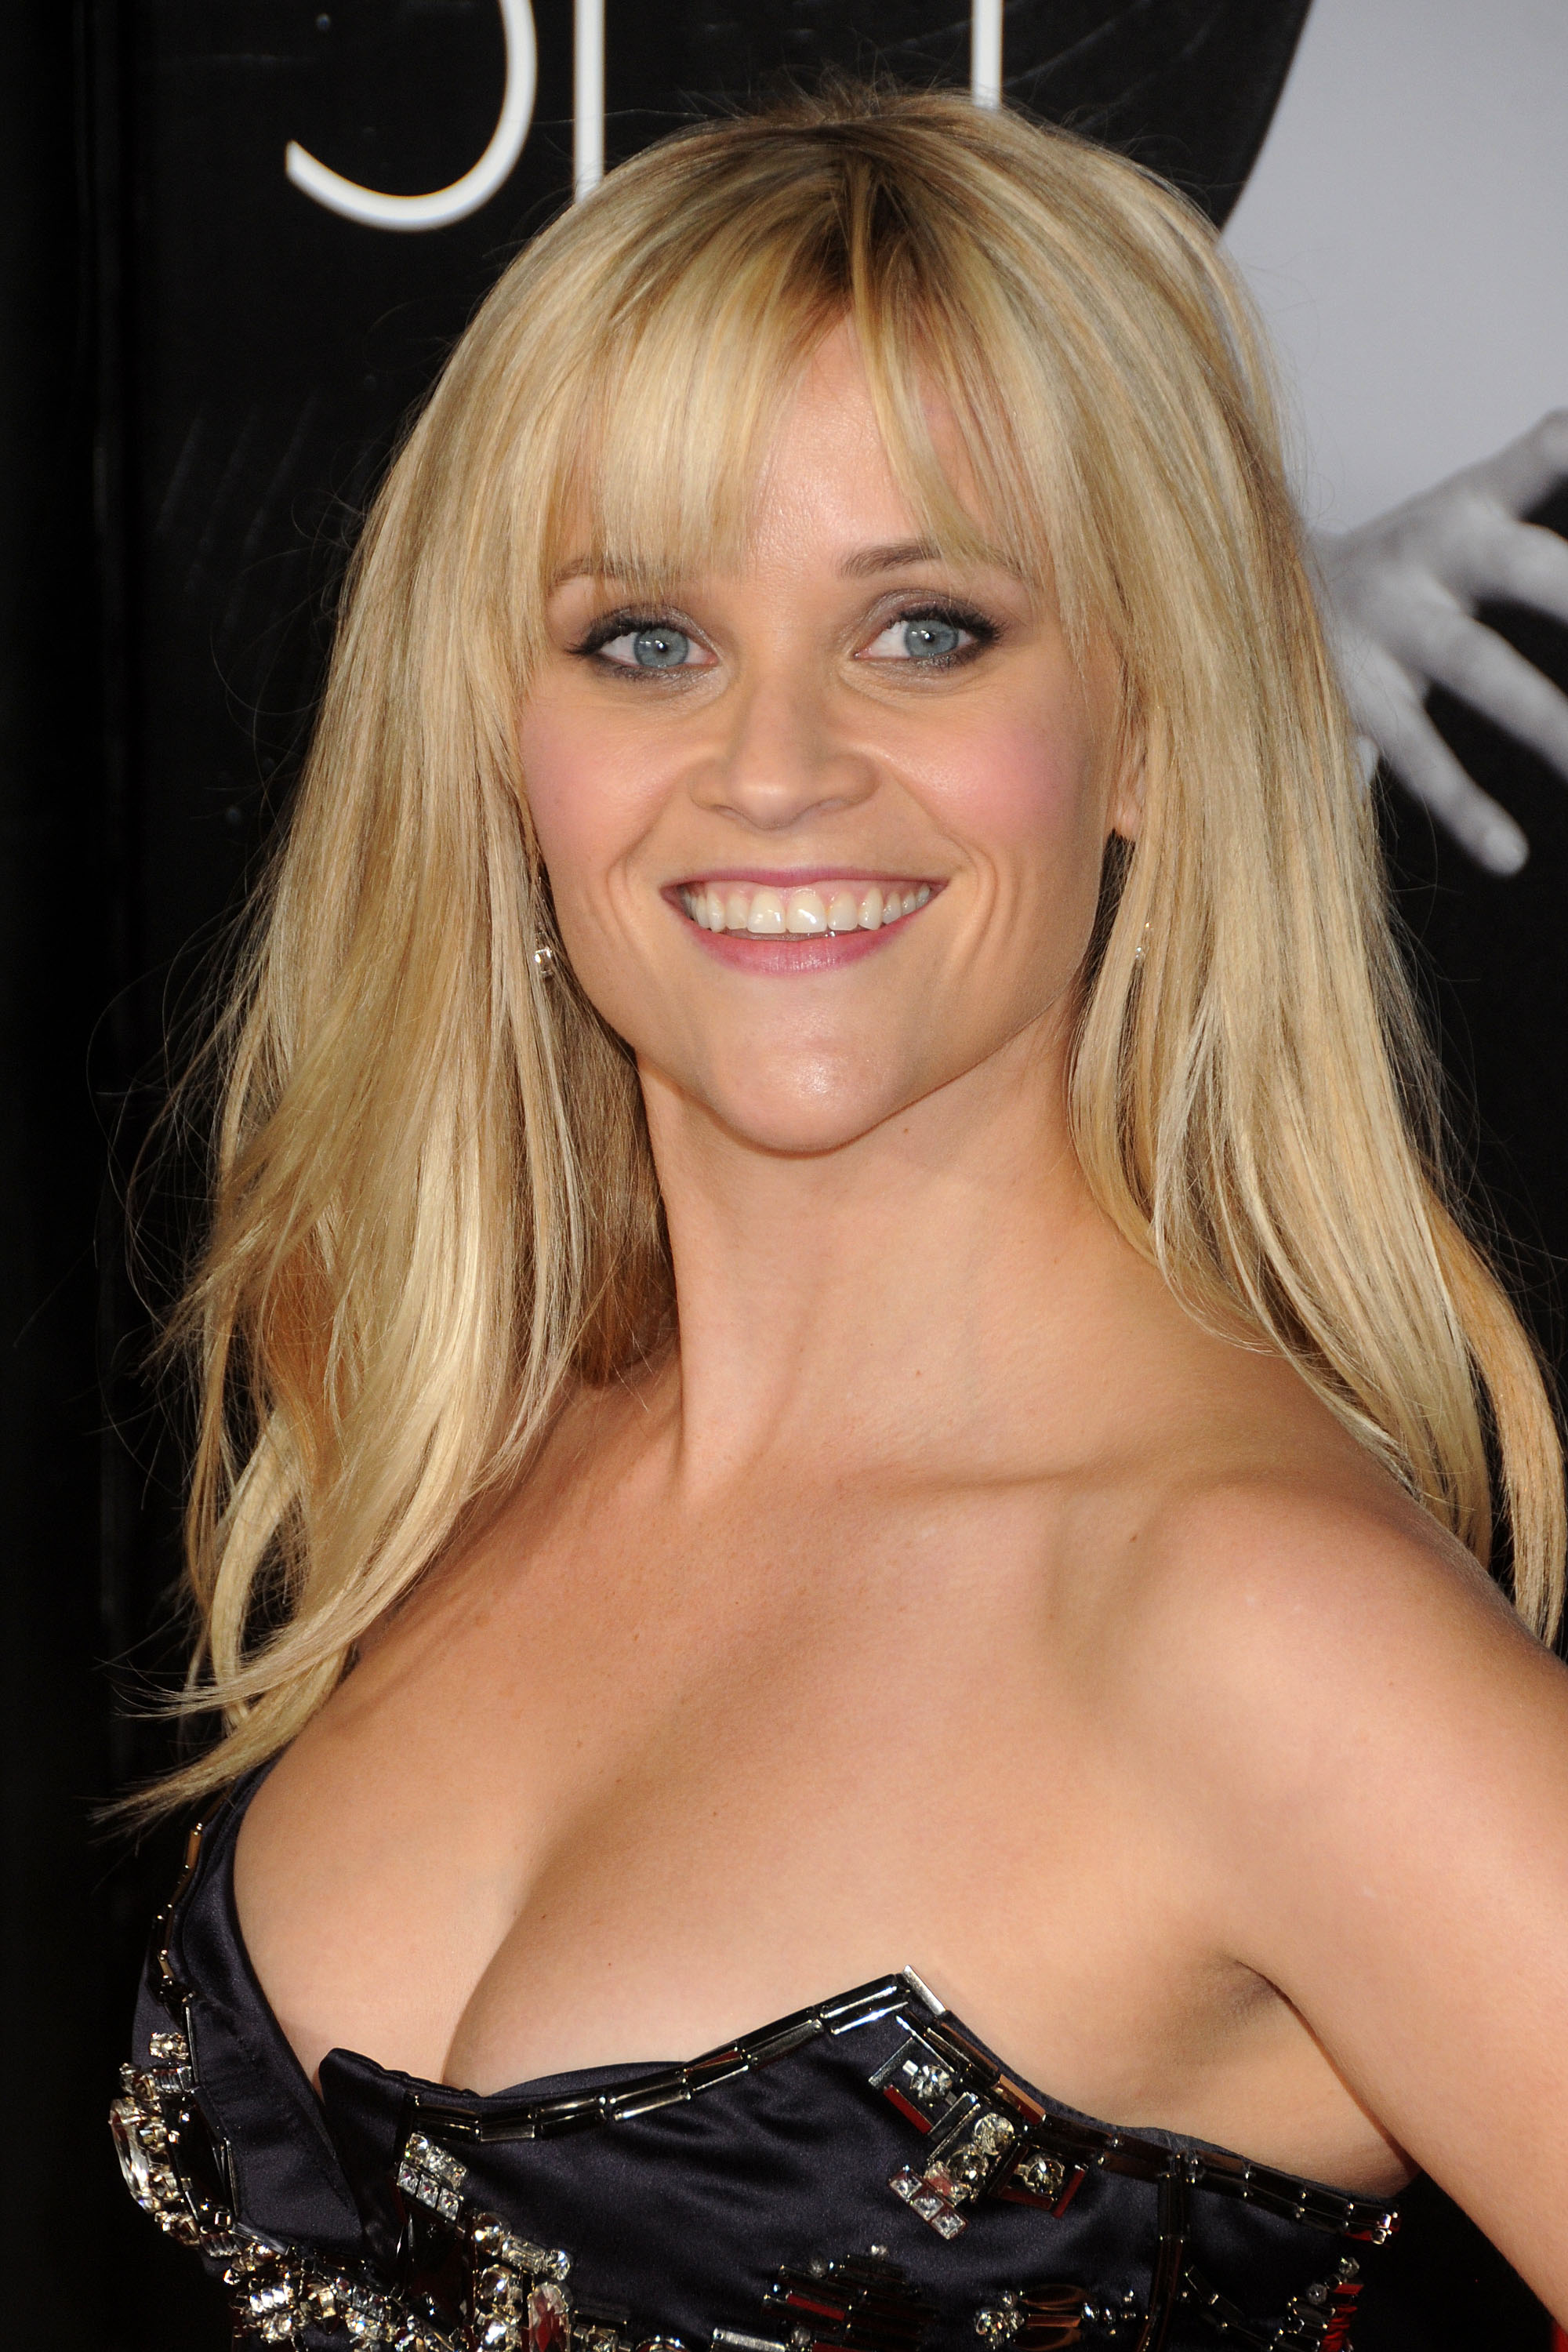 Reese Witherspoon Sizzling Hot Photos  Bikini Pics - You -3733